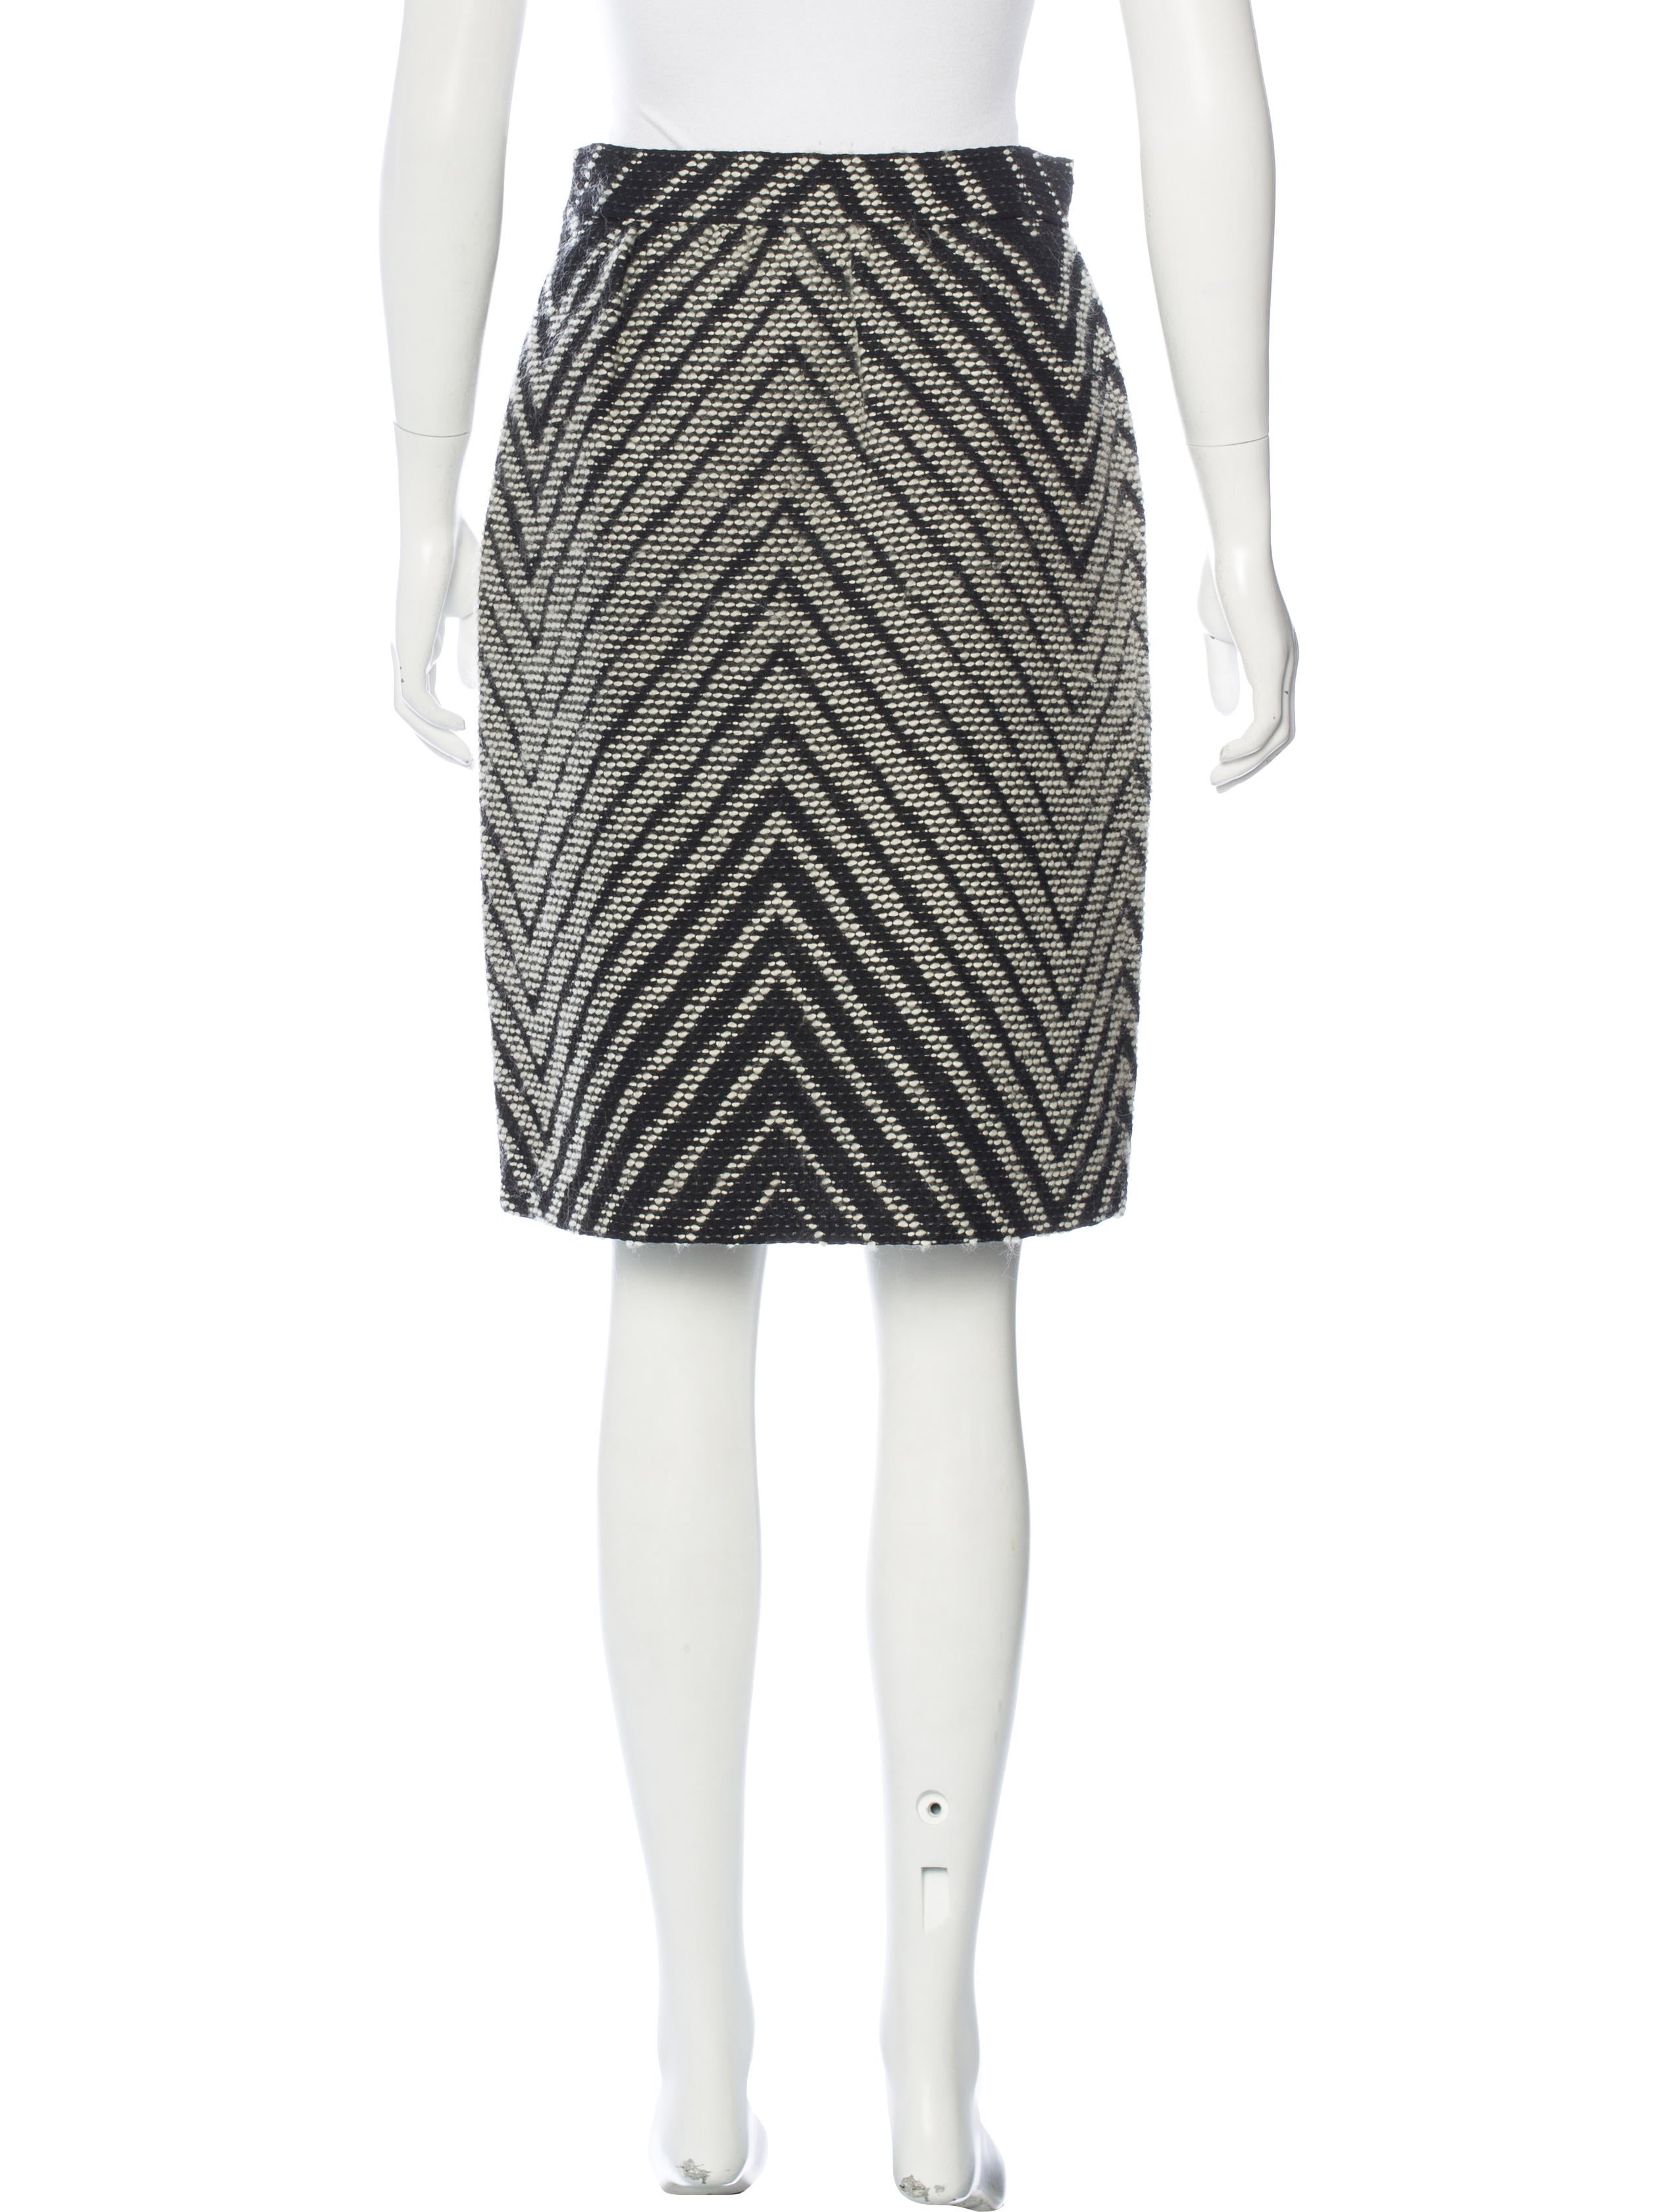 Valentino Knit Pencil Skirt - Skirts - VAL57831 | The RealReal